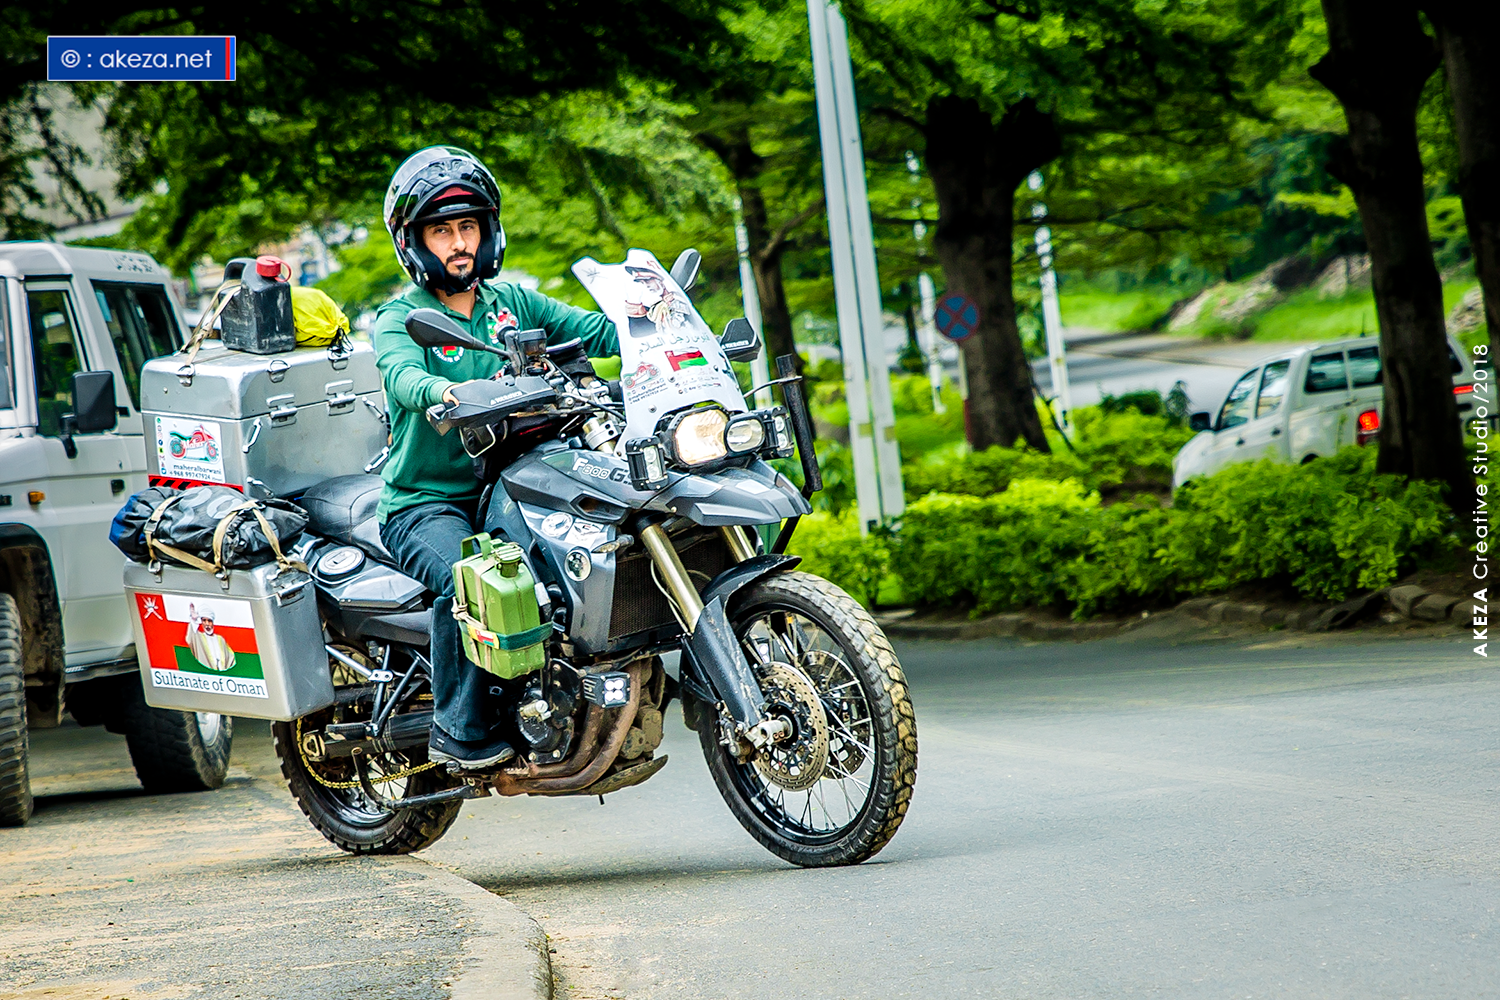 Meet Maher Al Barwani, the Omani who is traveling Africa on a motorbike